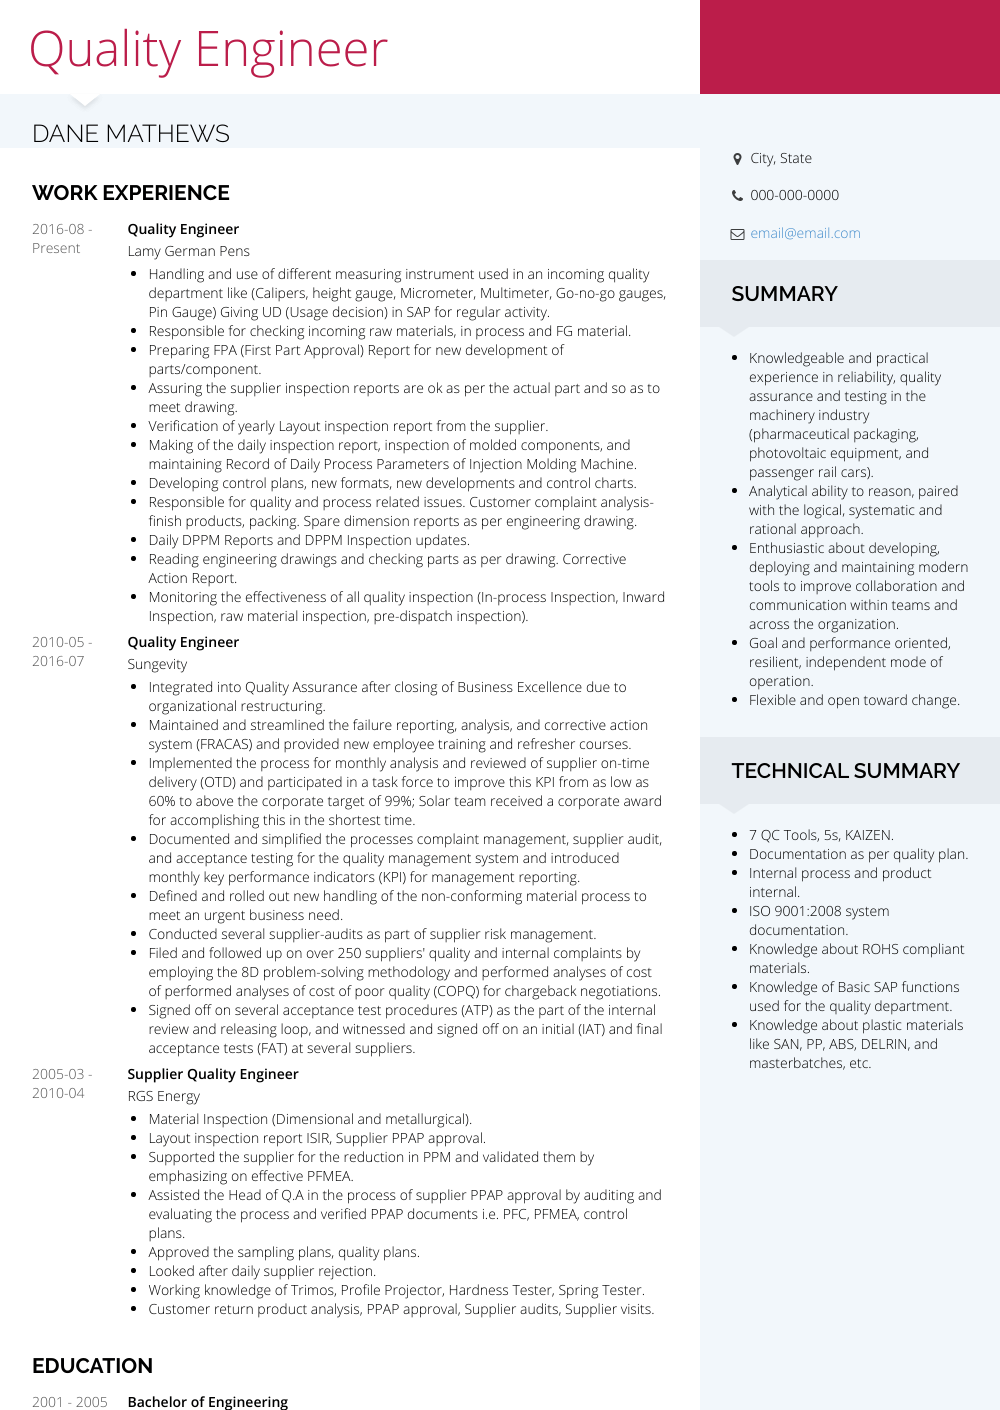 Quality Engineer - Resume Samples & Templates | VisualCV